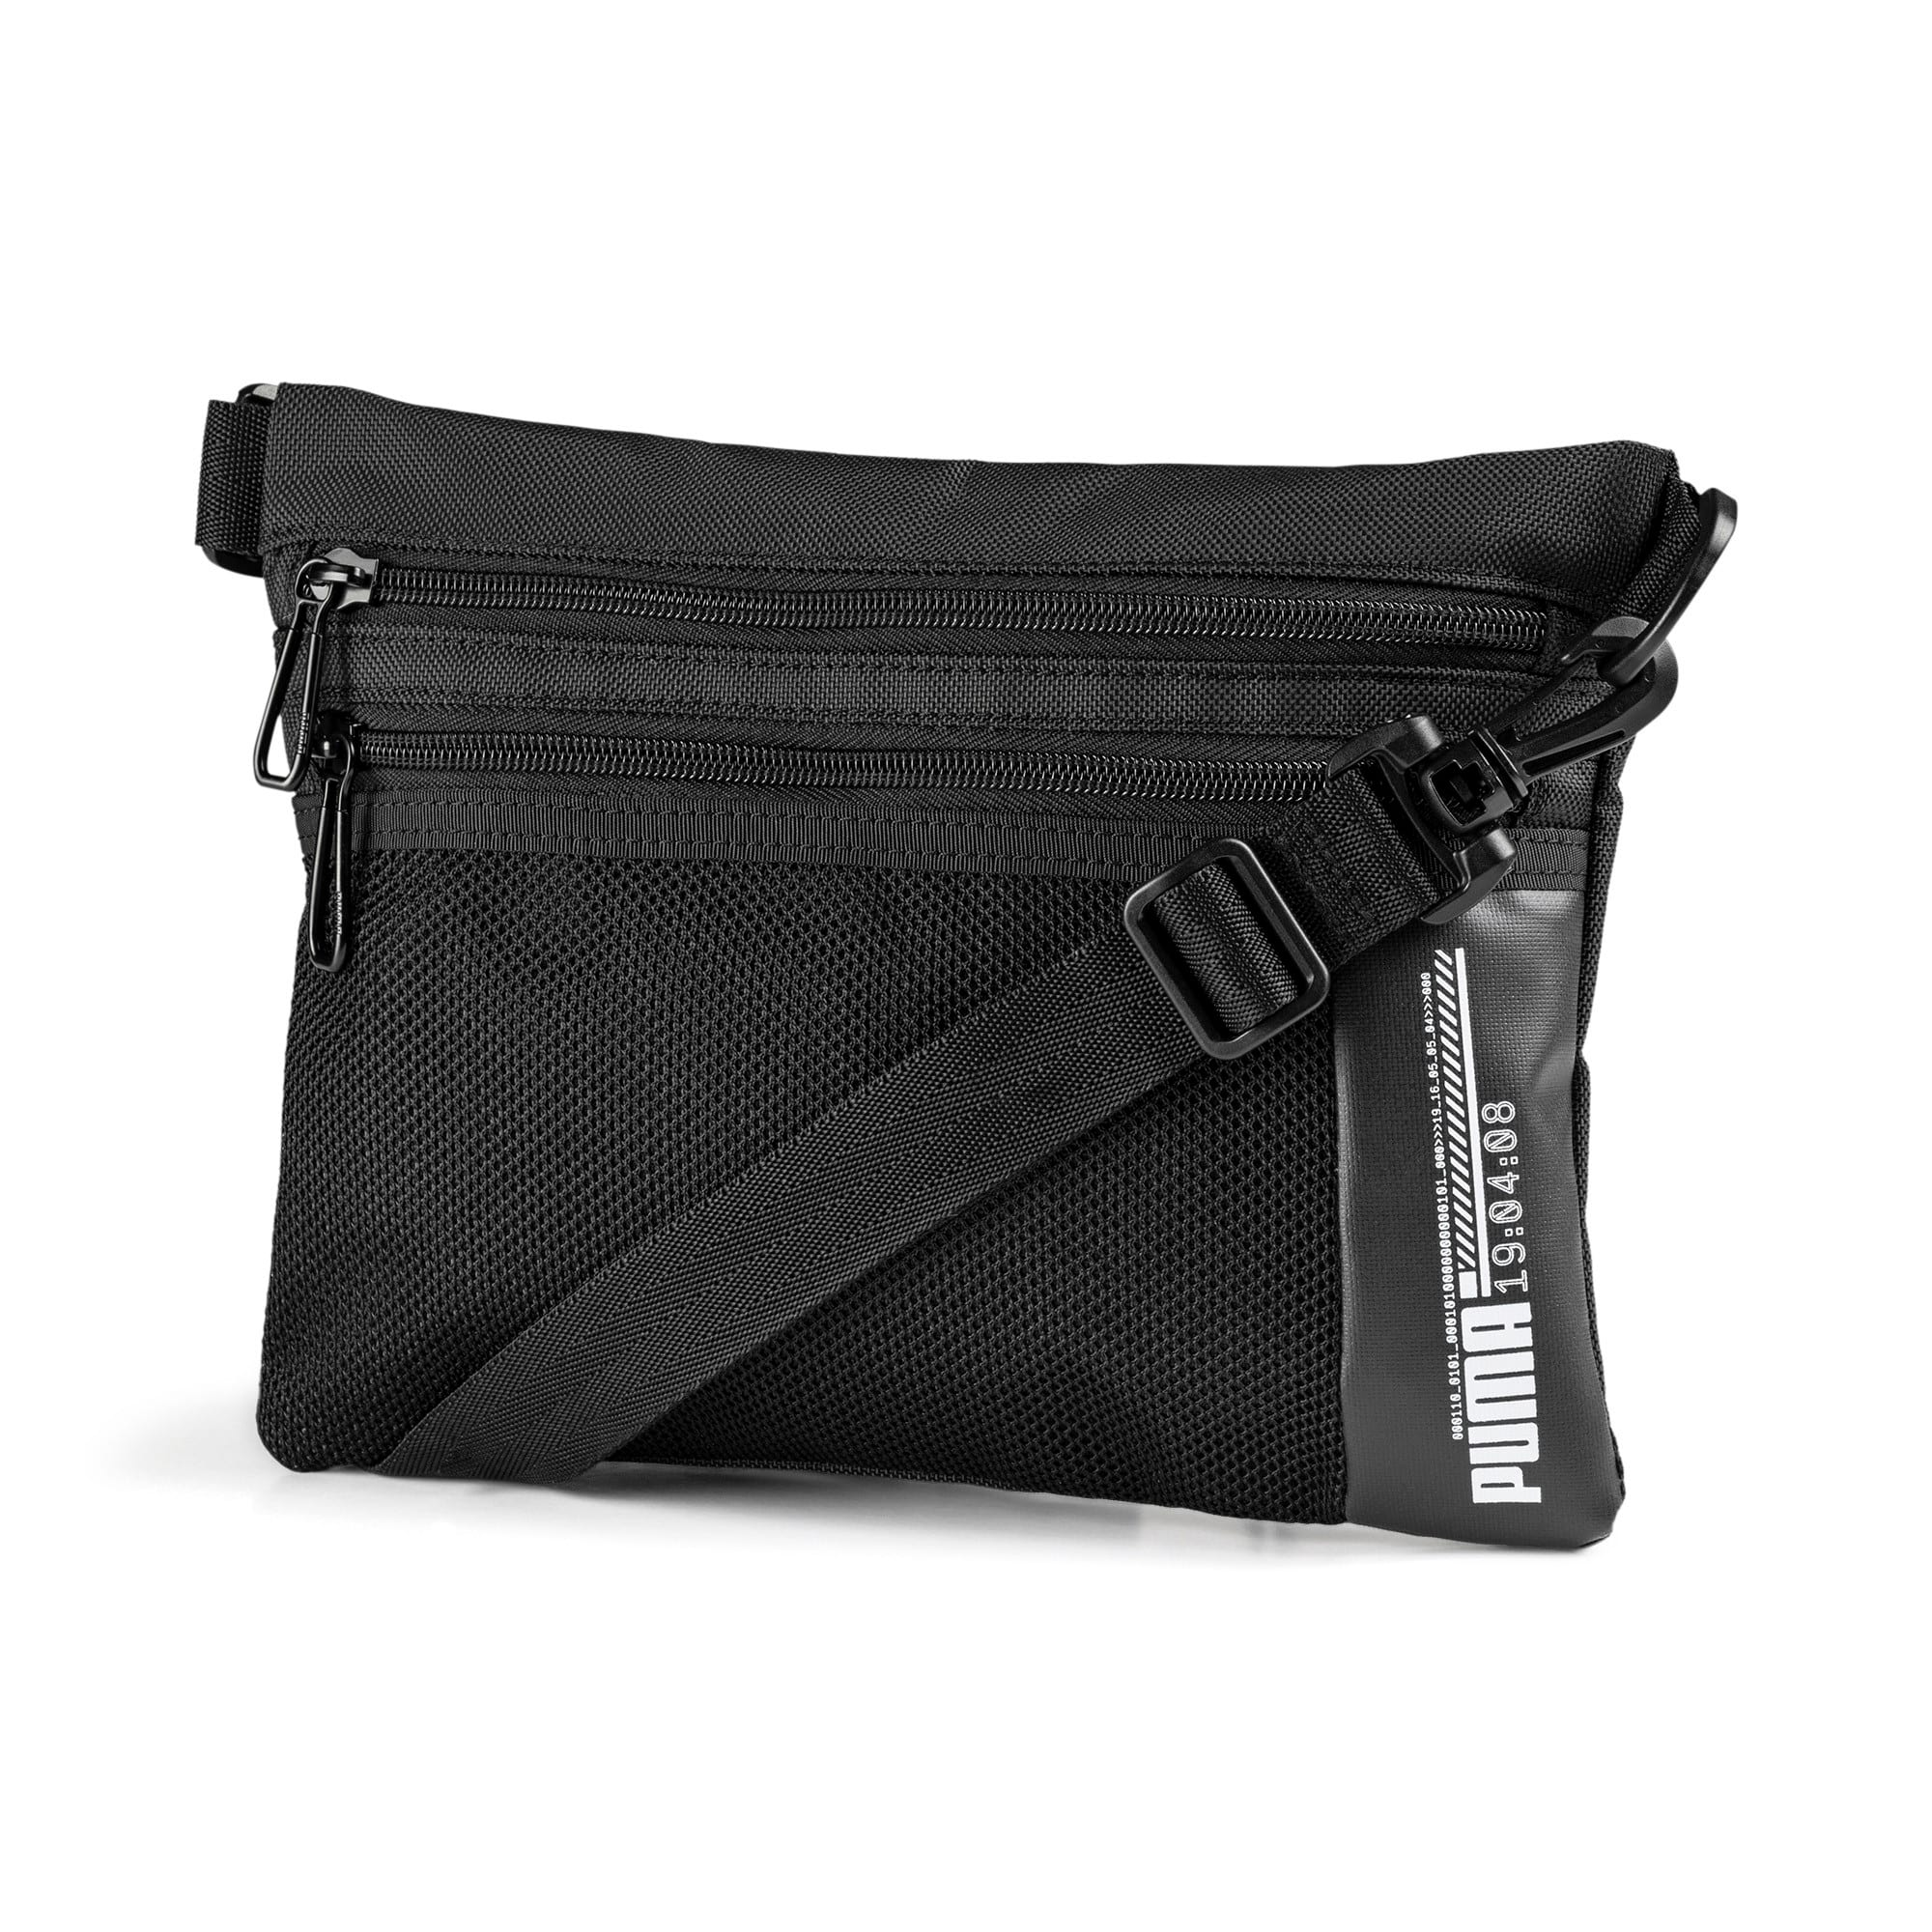 Thumbnail 1 of Energy Training Shoulder Bag, Puma Black, medium